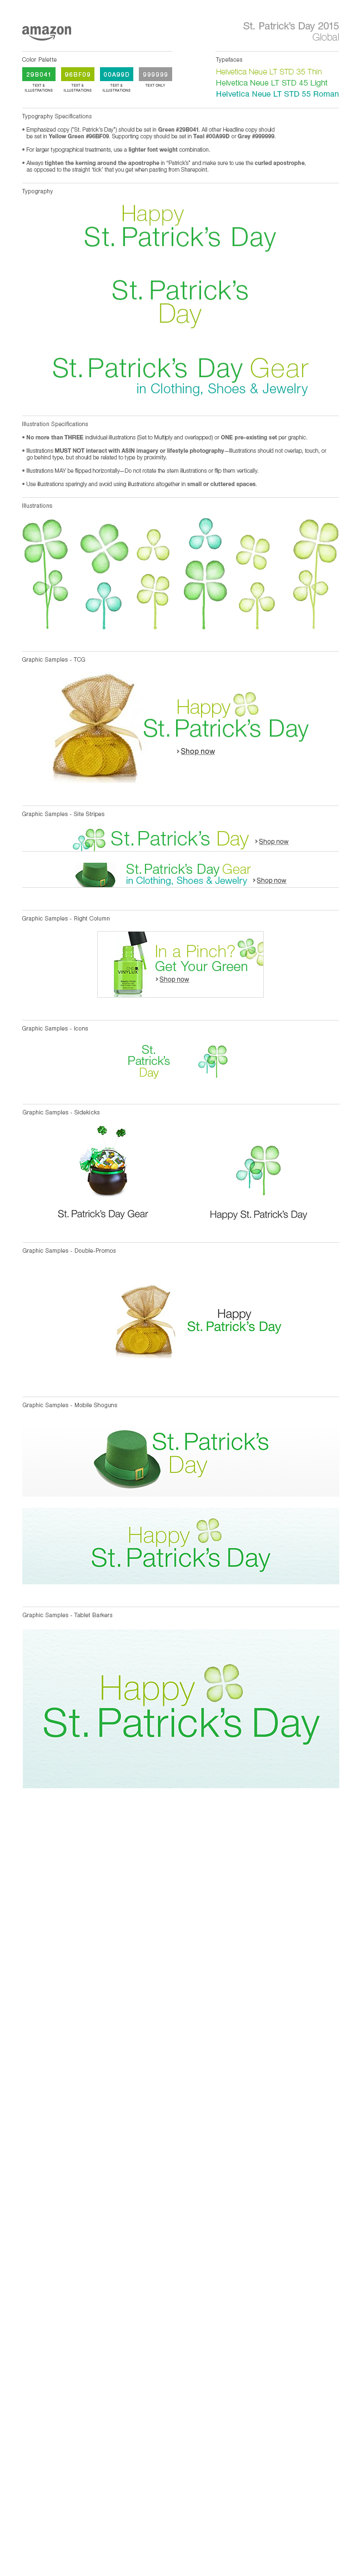 2015_st-patricks-day_styleguide.jpg